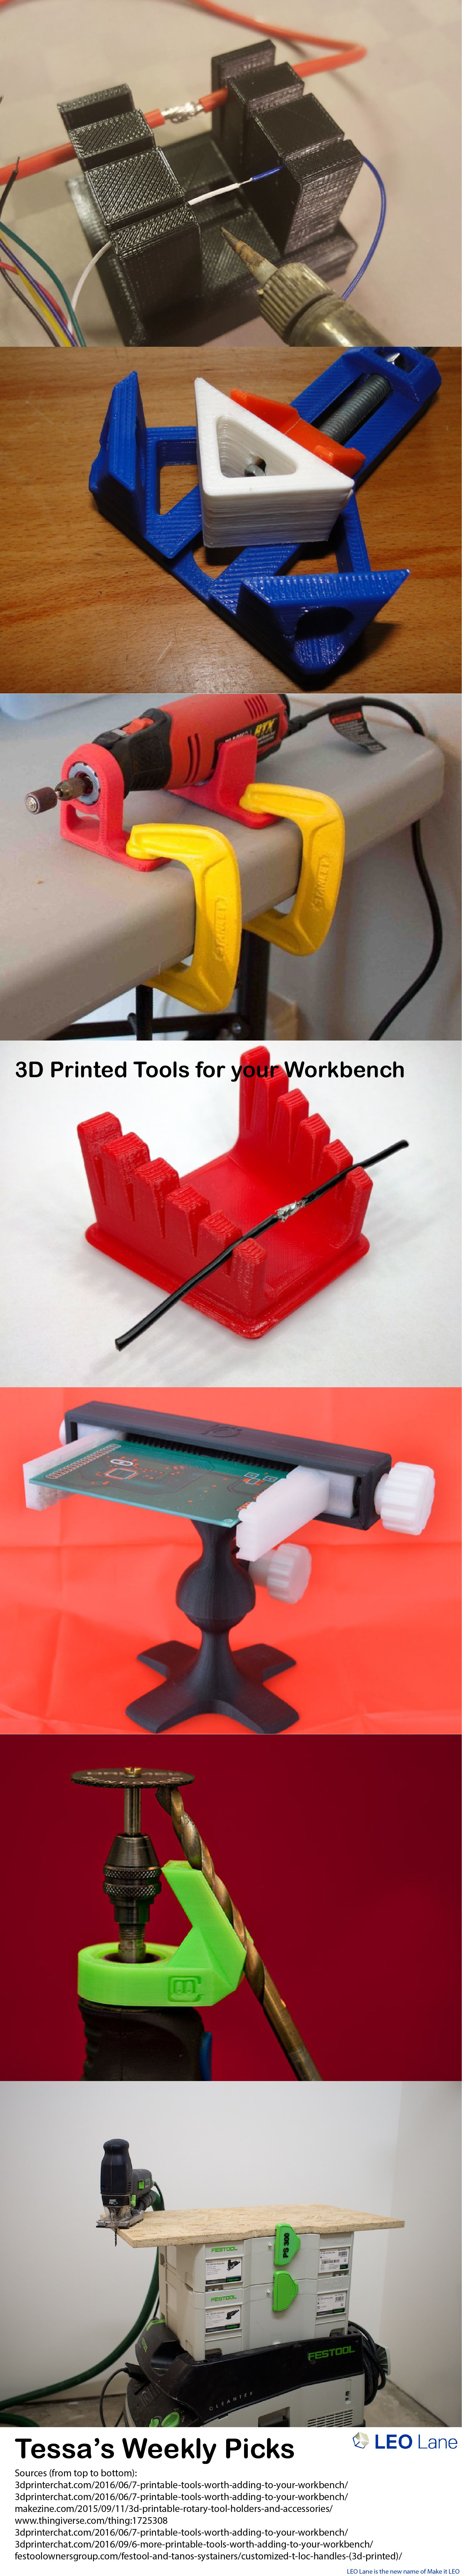 Tessa's Weekly Picks – 3D Printed Tools for your Workbench